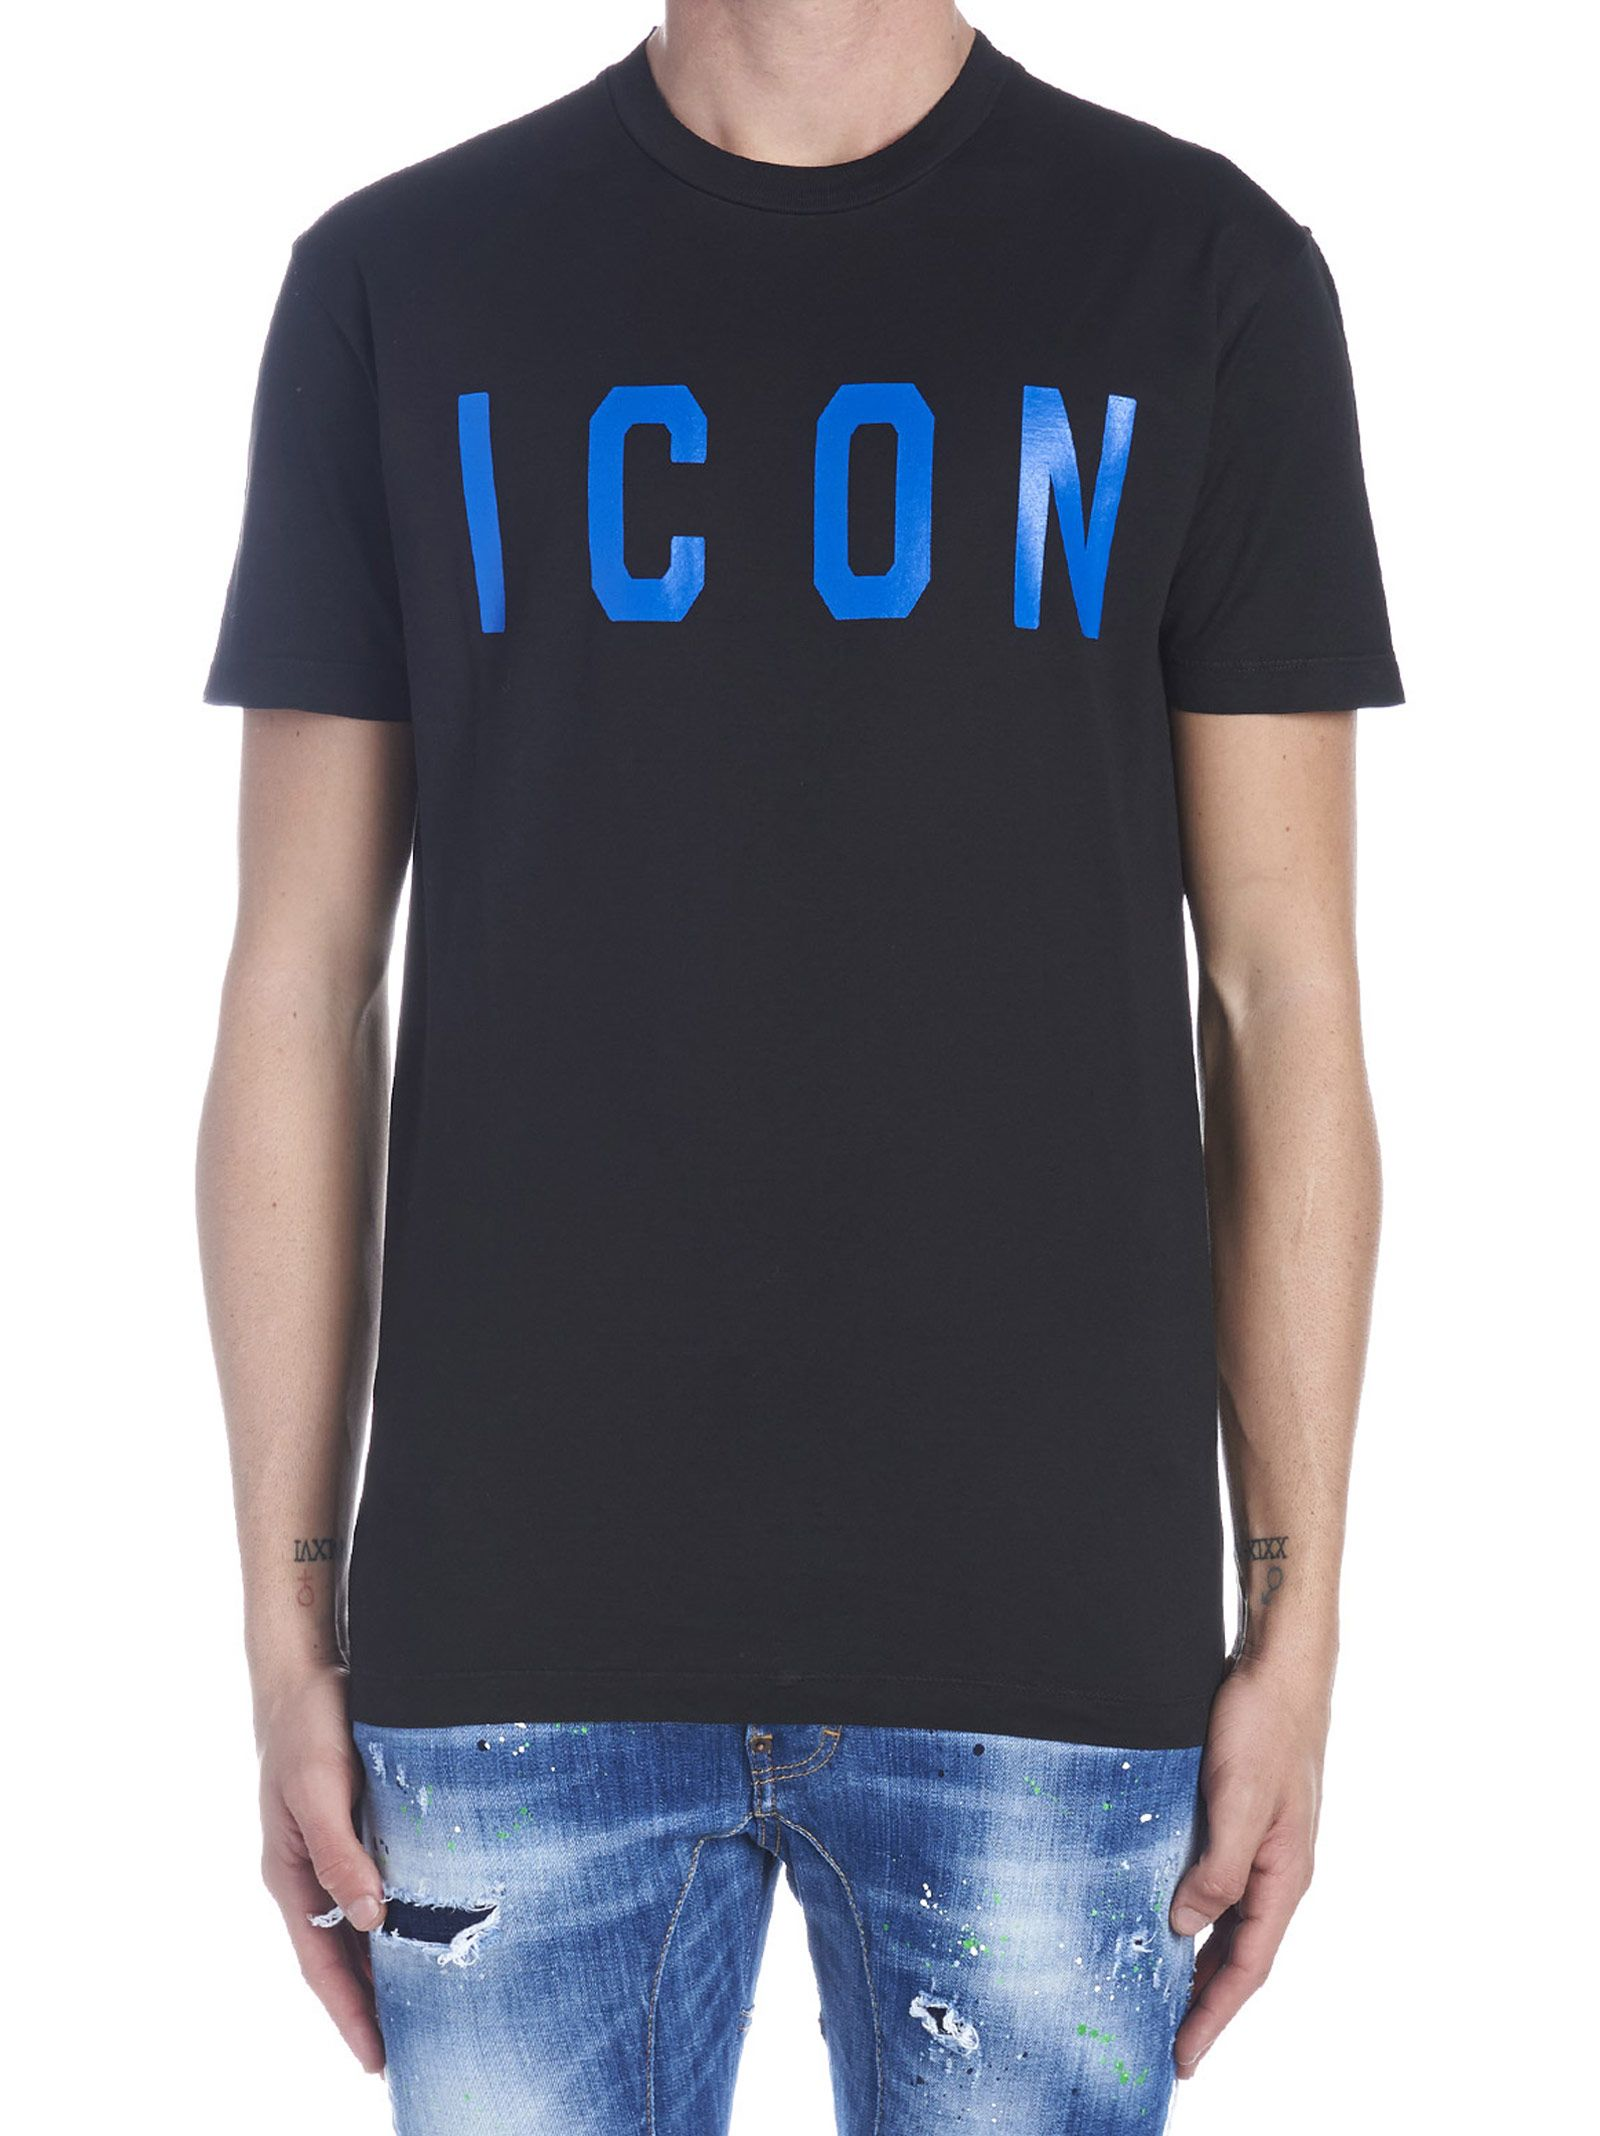 8fee55f7b0393b Dsquared2 Dsquared2 'icon' T-shirt - Black - 10946005 | italist